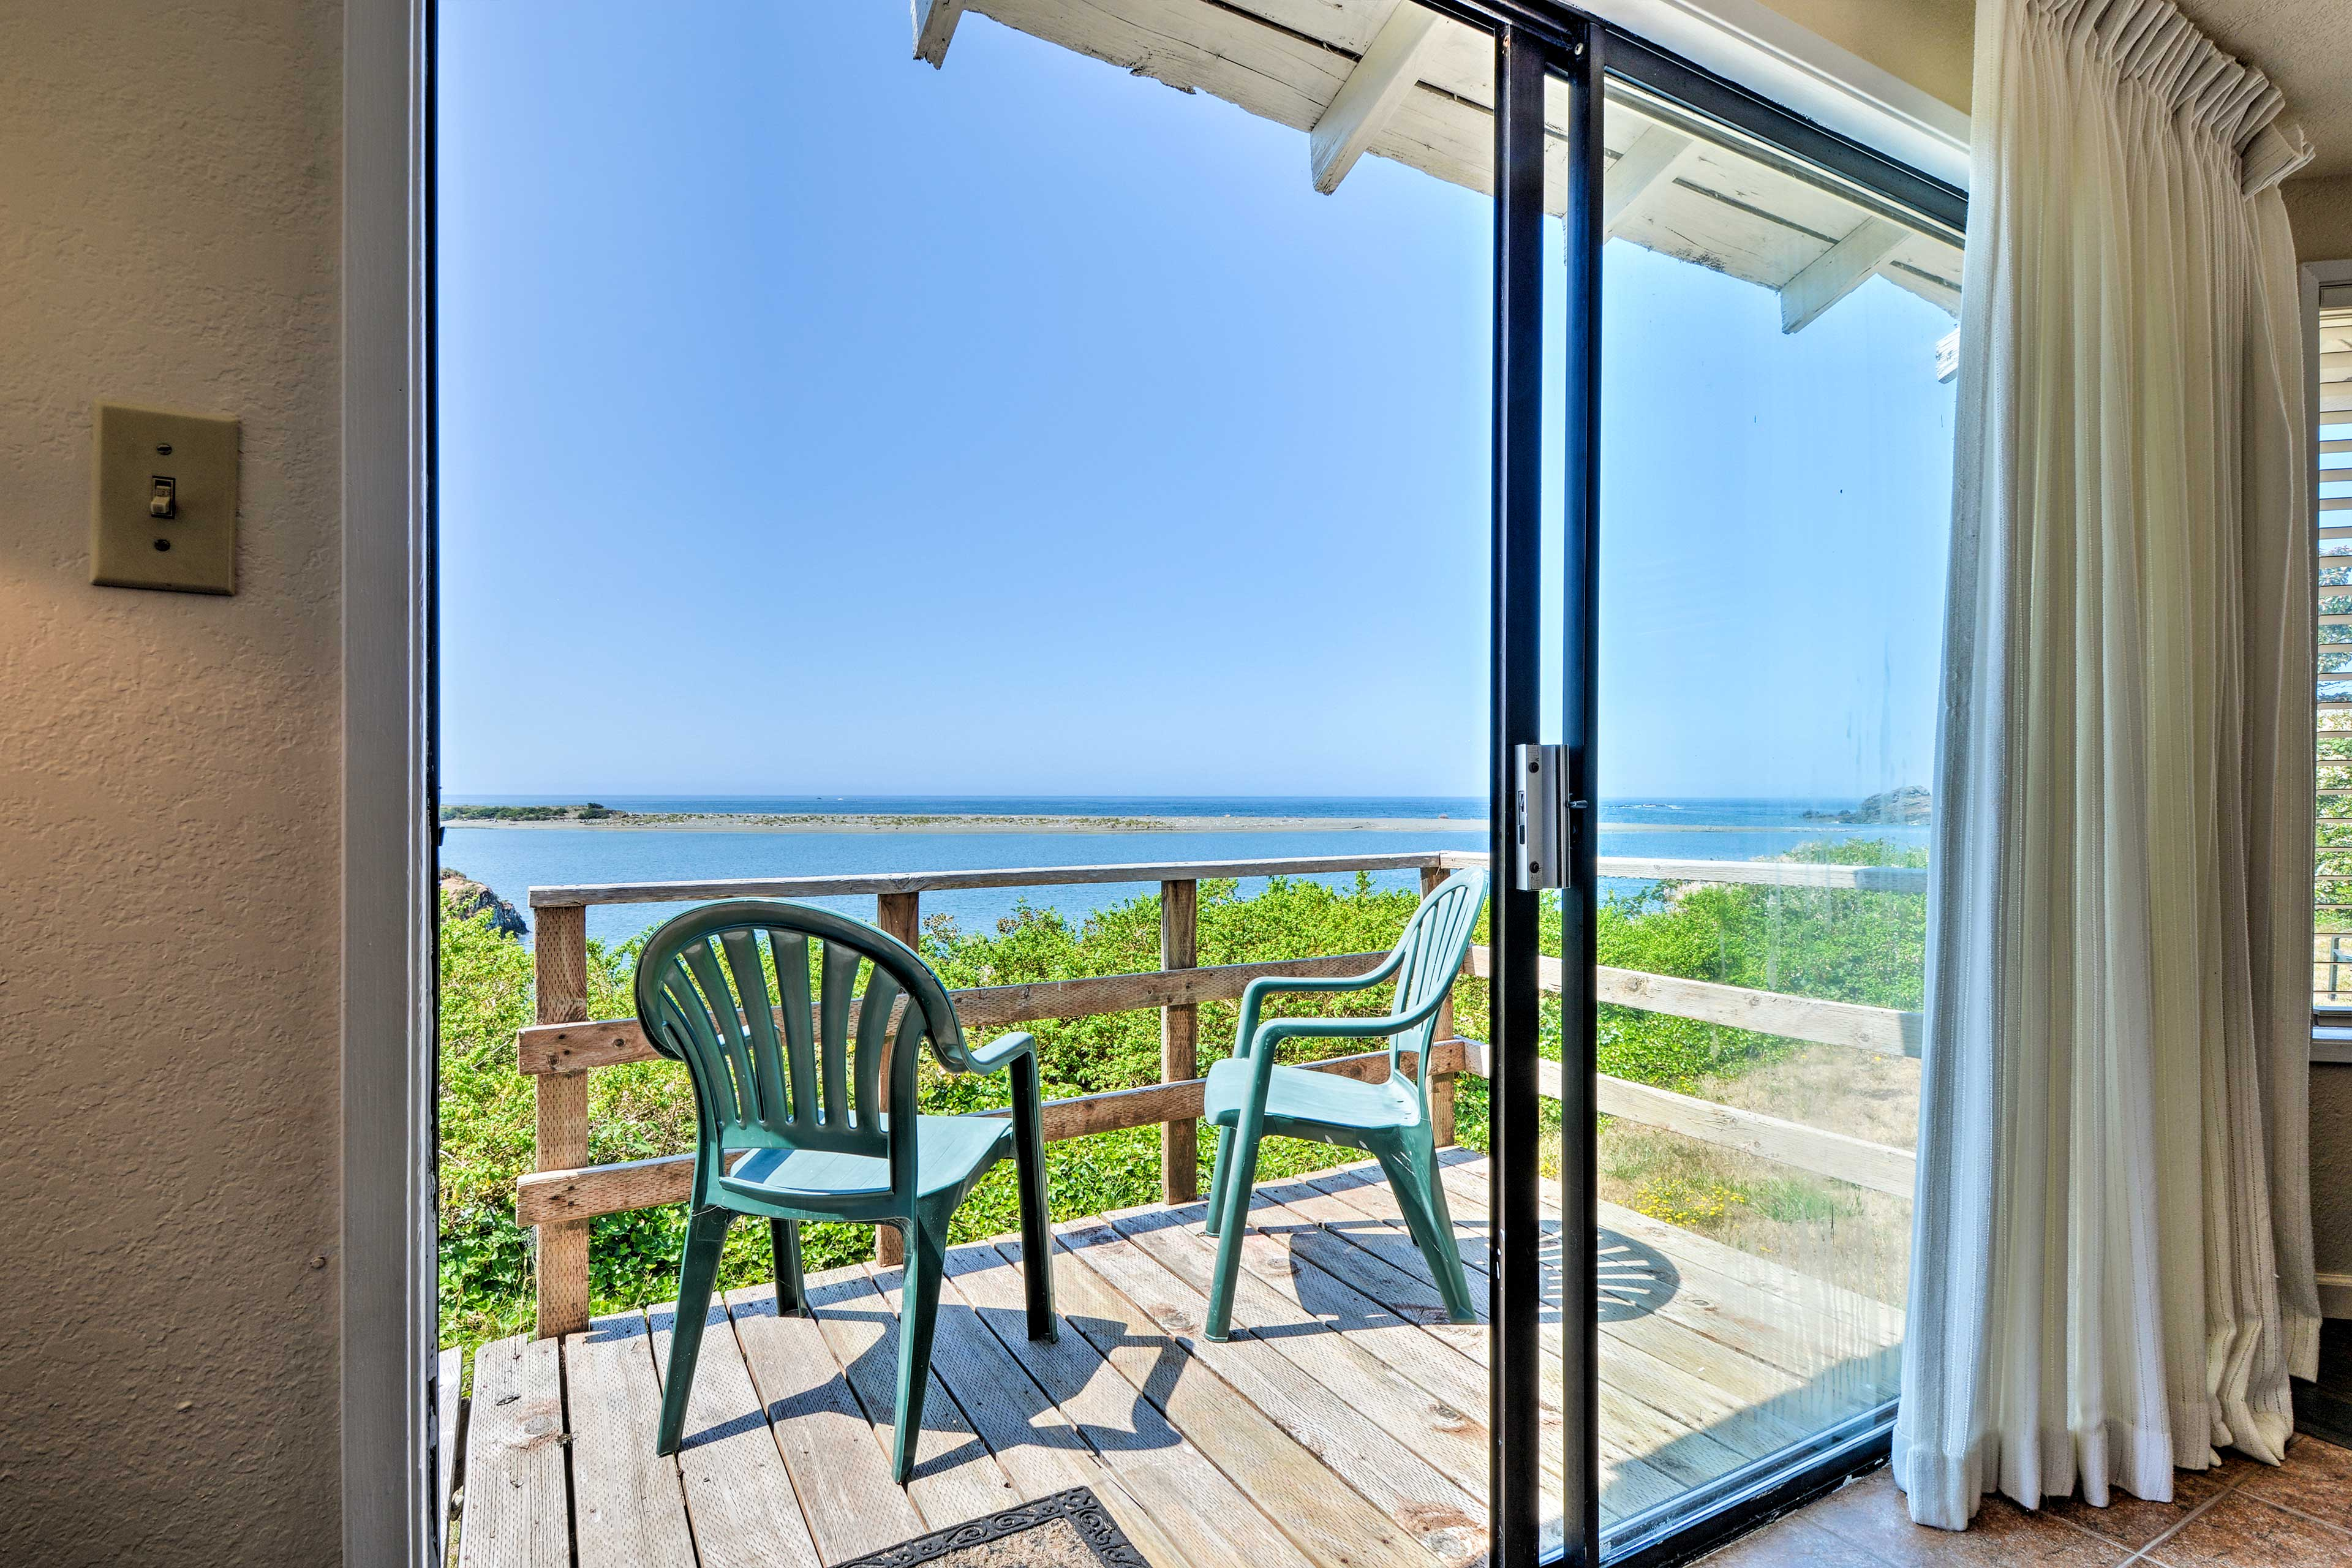 Relax on the deck and gaze into the ocean.